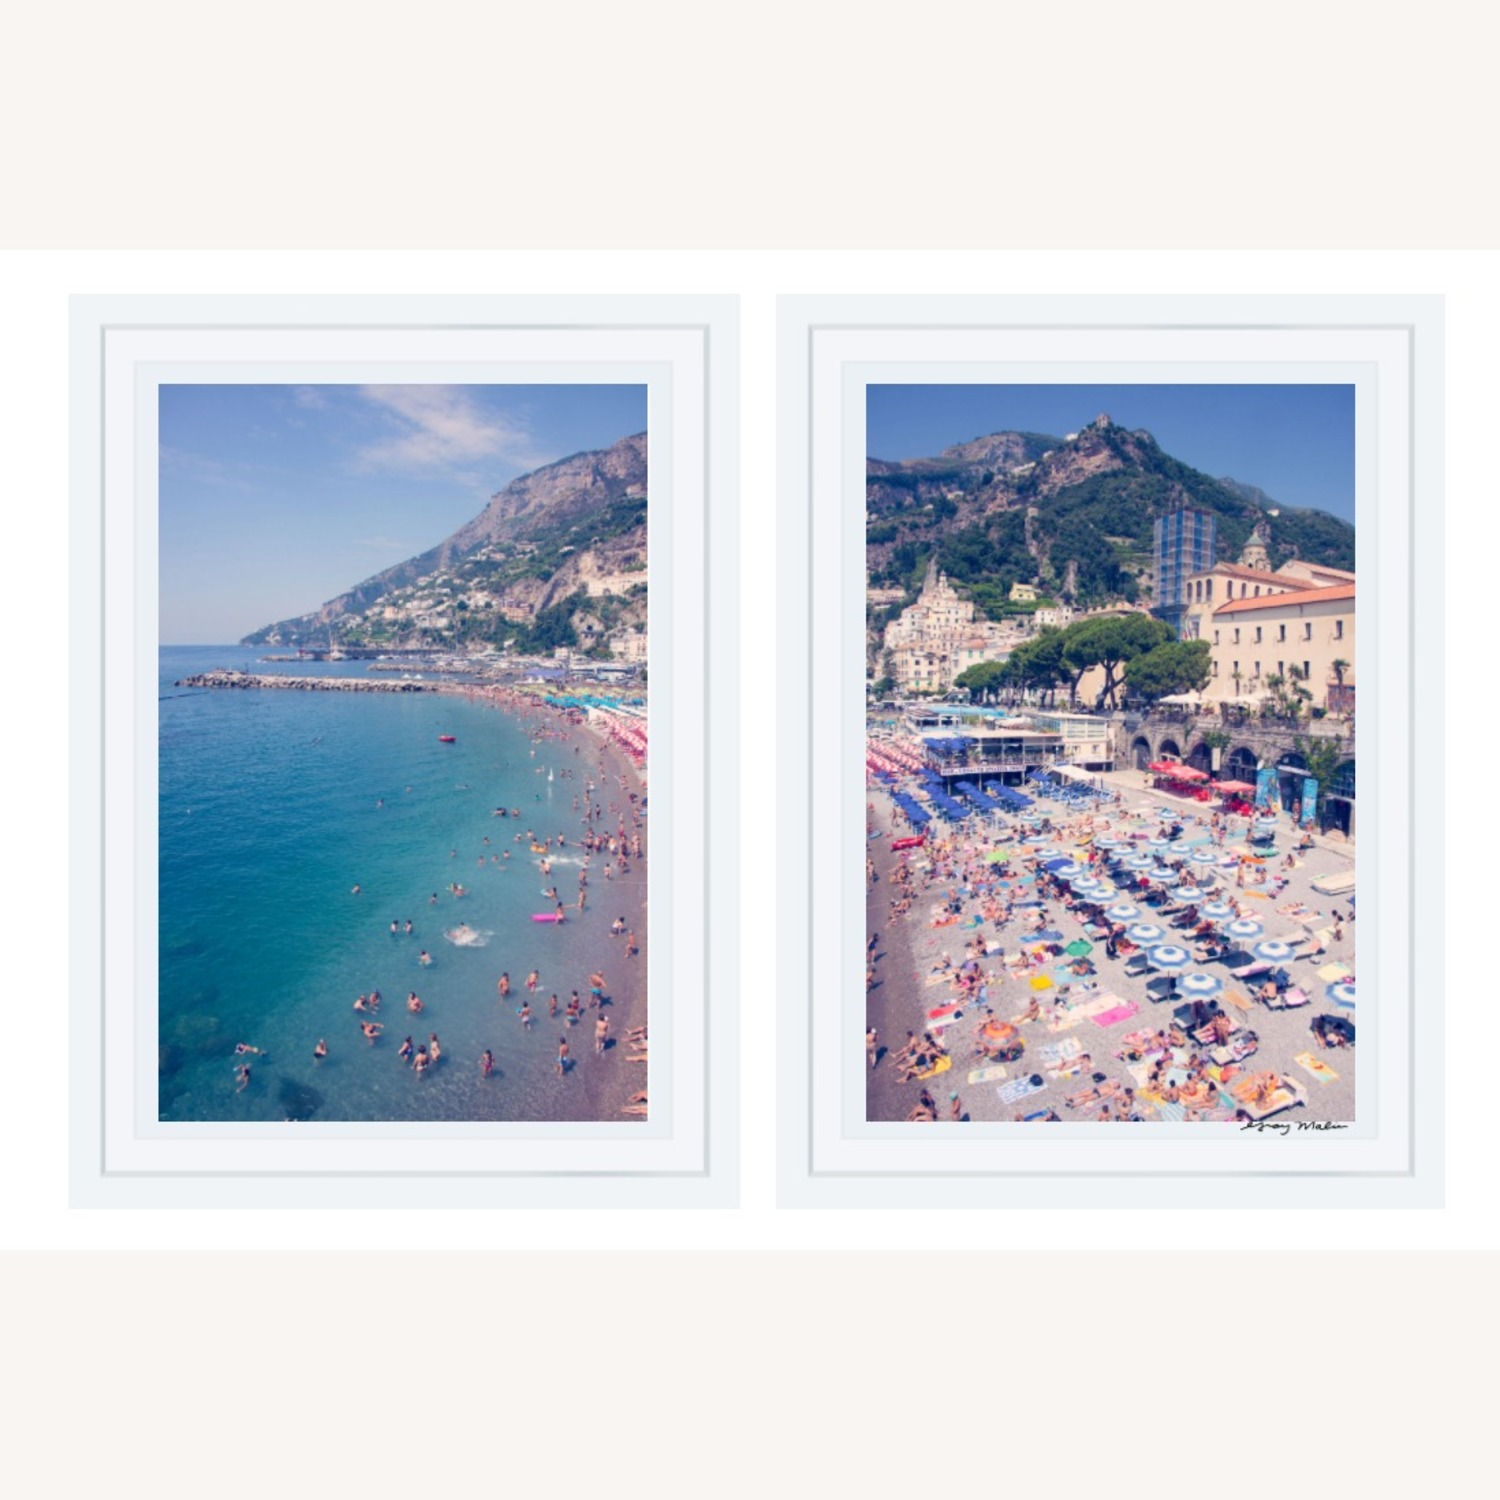 Authentic Gray Malin Positano Diptych Prints - image-1